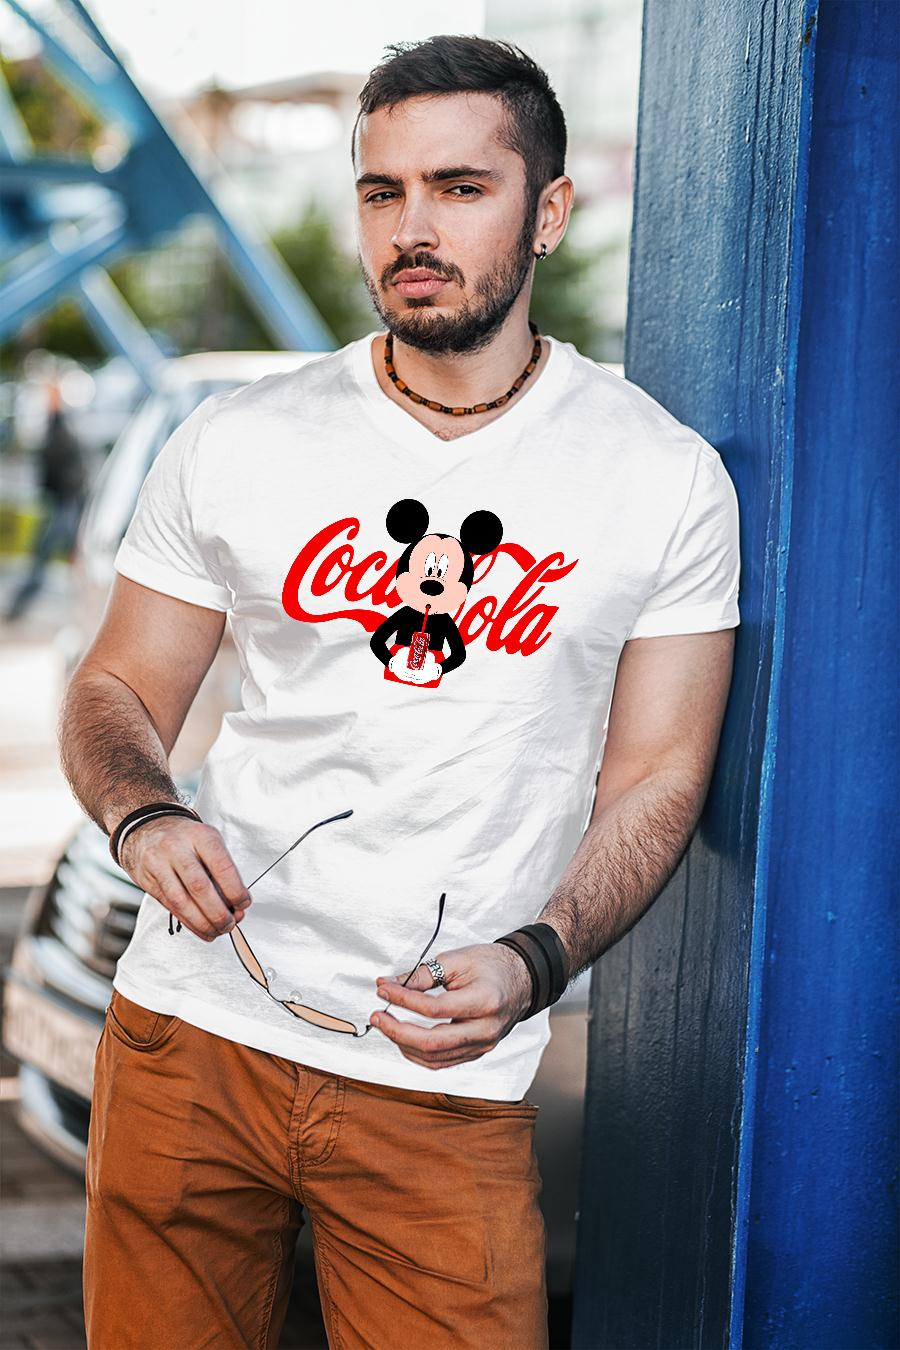 Mickey Mouse drink coca cola shirt unisex